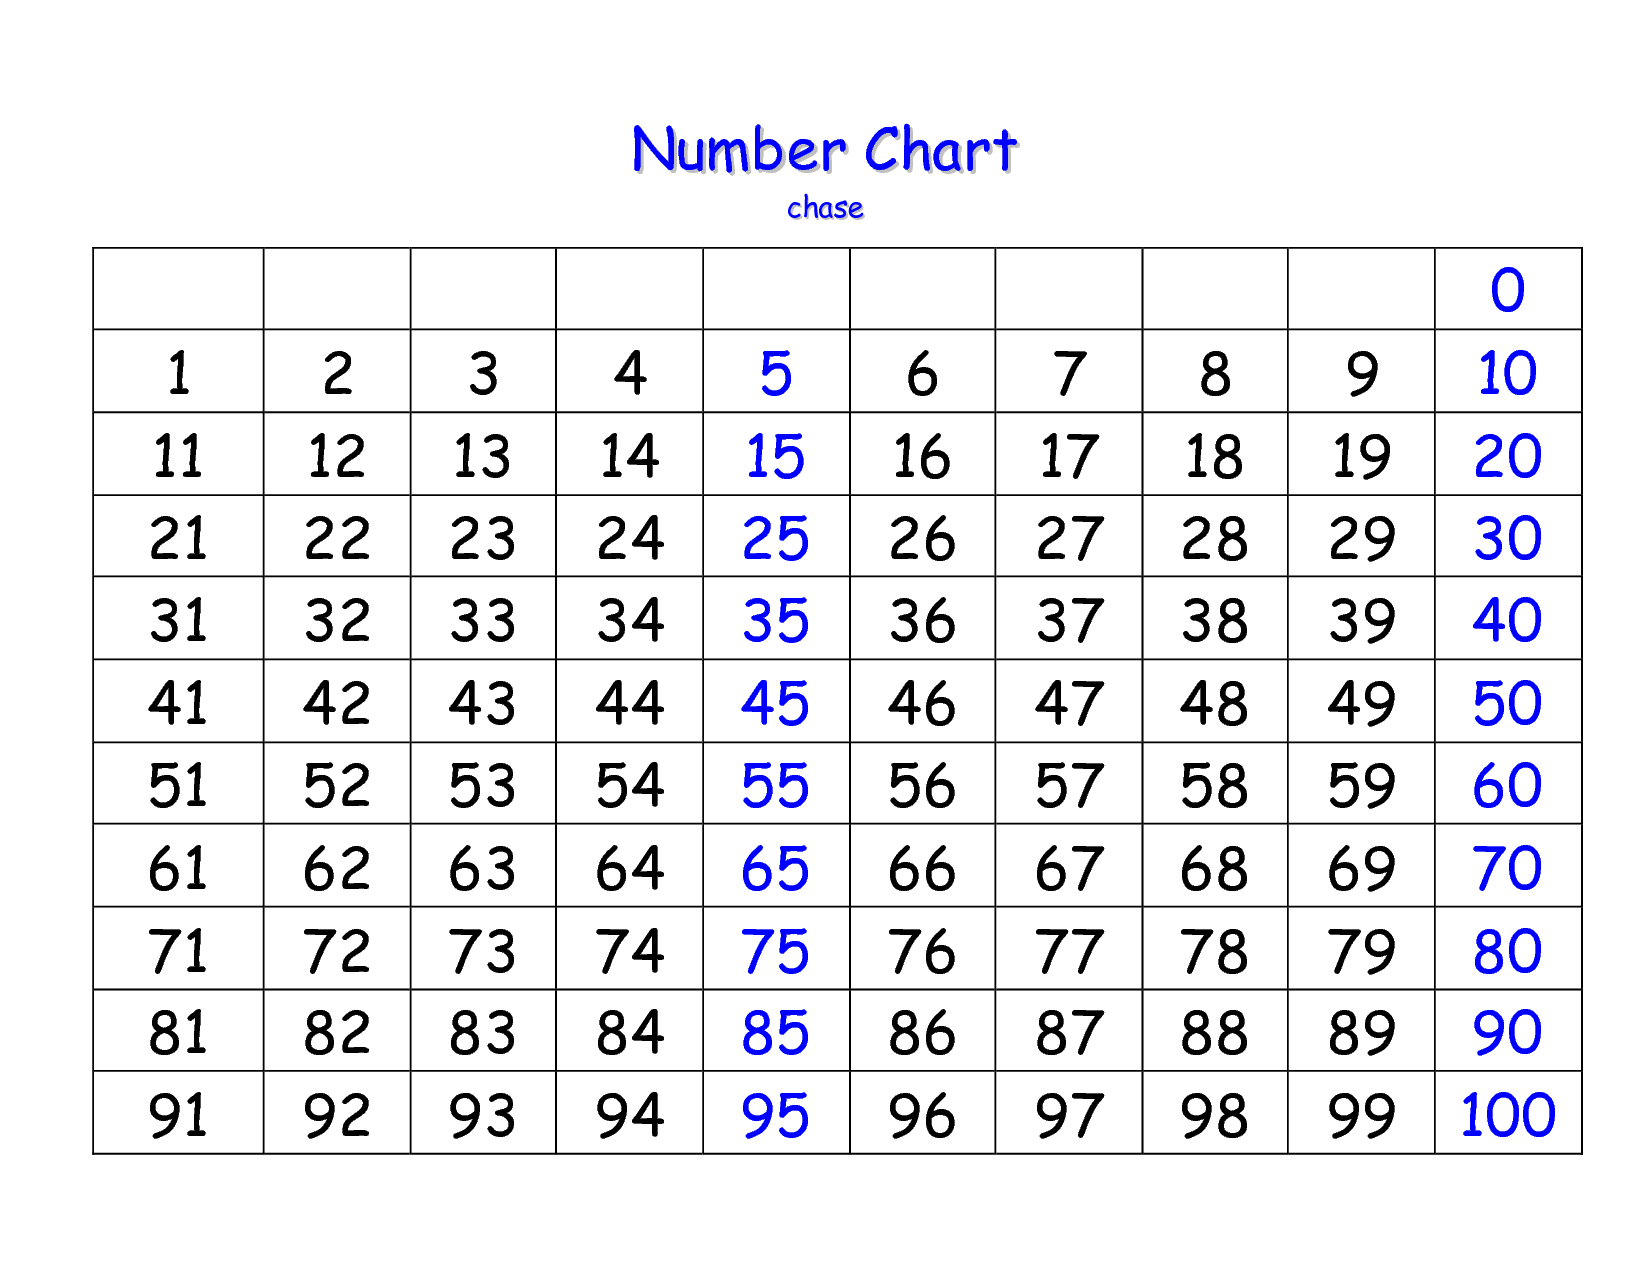 100 number chart for 100 number table